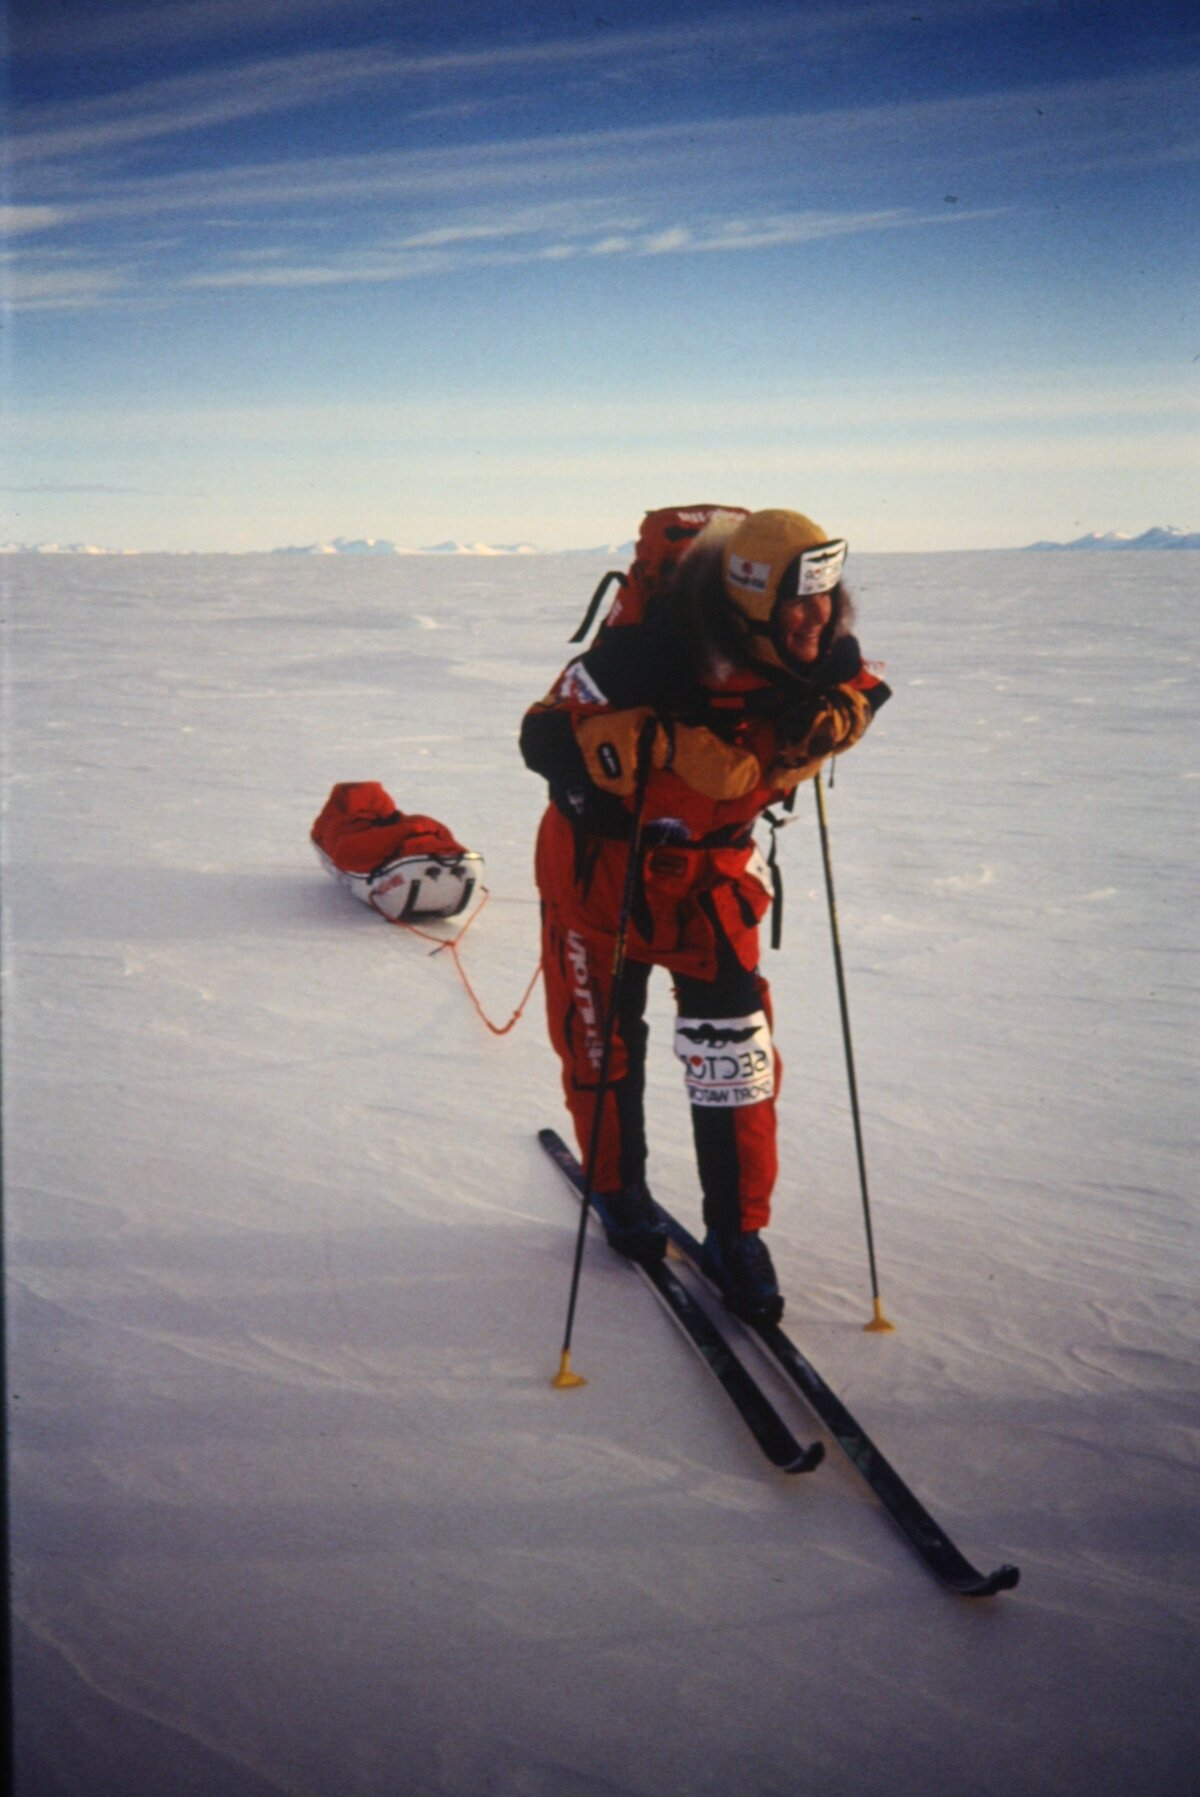 Liv Arnesen, first woman to ski solo to South Pole